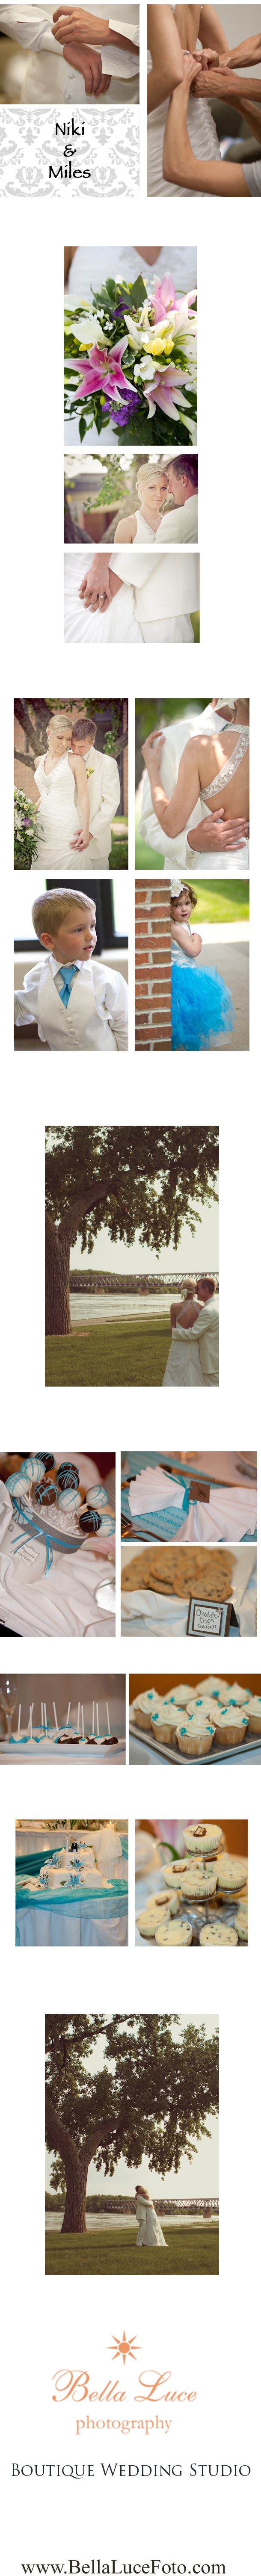 Wedding Photographers in Sioux Falls | Wedding Planning